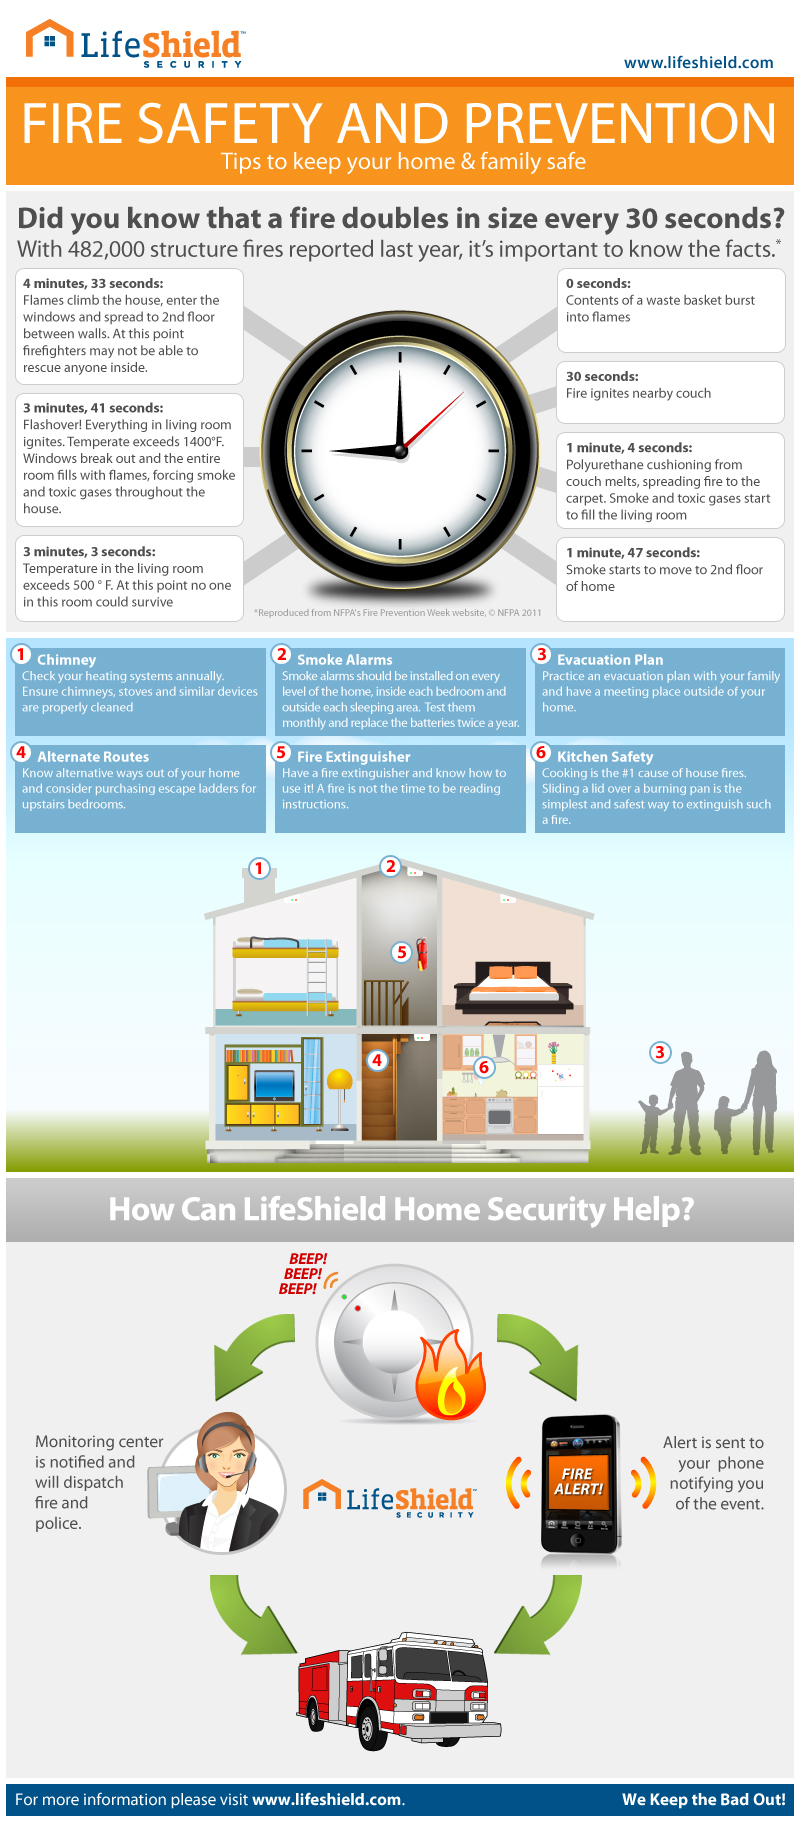 LifeShield Home Security burglar fire alarm safety